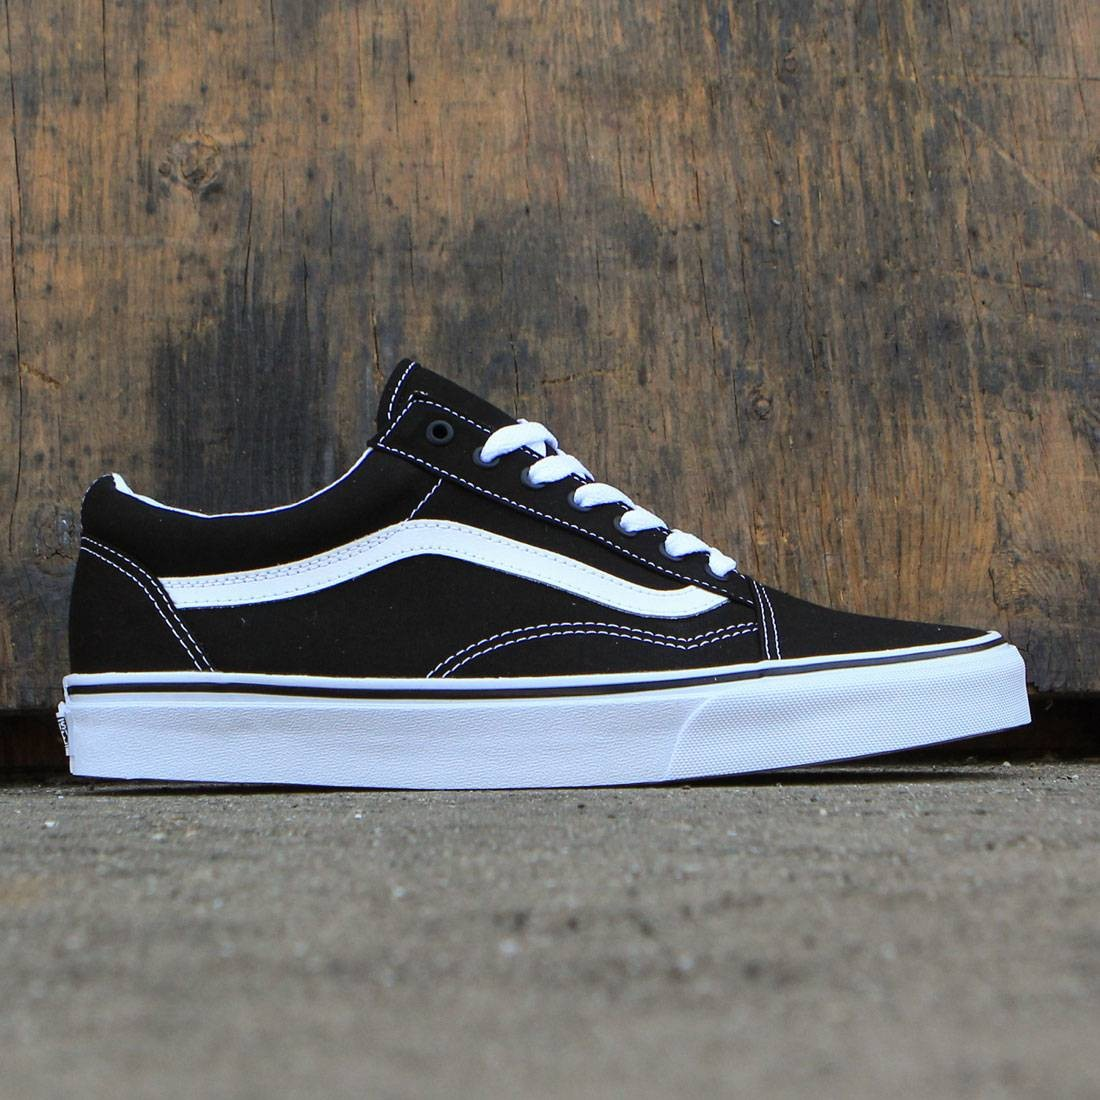 vans old skool canvas black and white